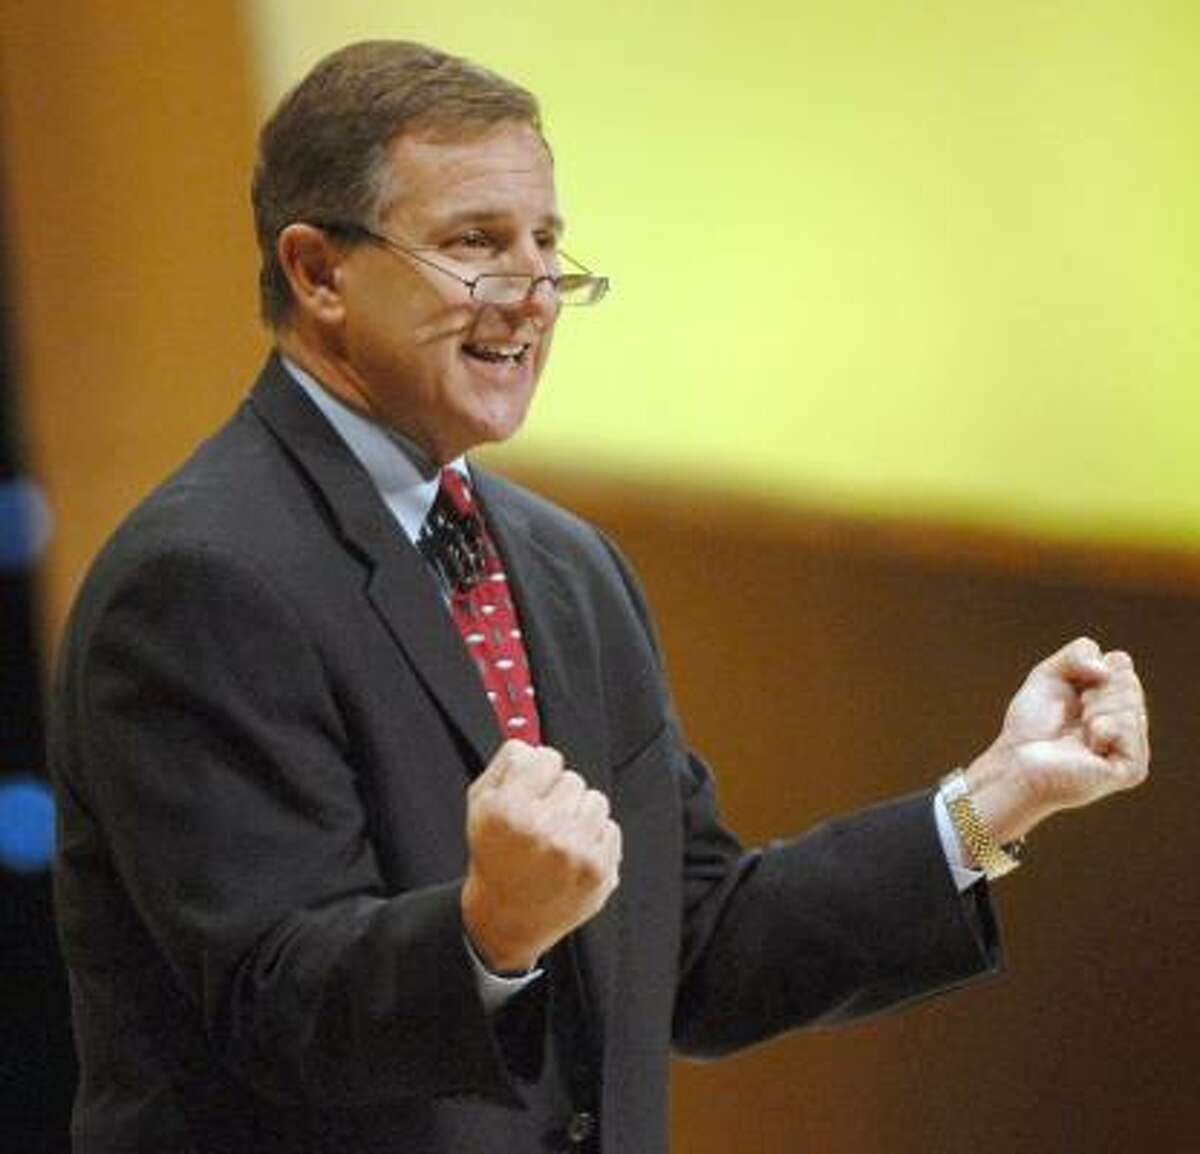 Hewlwtt-Packard CEO Mark Hurd gives the keynote address at the company's technology forum at the George R. Brown Convention Center on Monday. Only in passing did he mention the controversy over an investigation into leaks from its board.